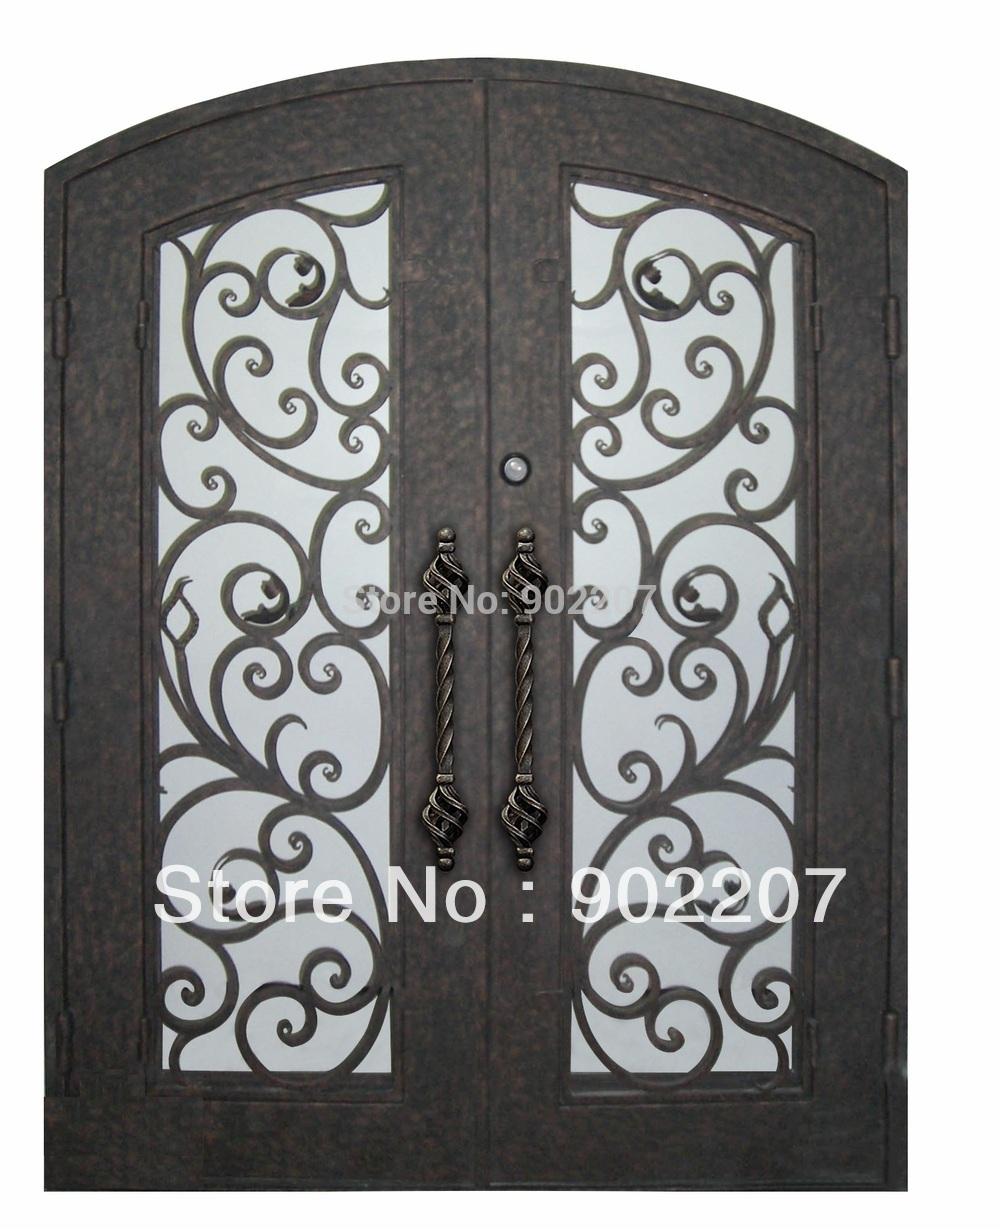 Hench 100% Steel Iron Doors  Model Hc-id140